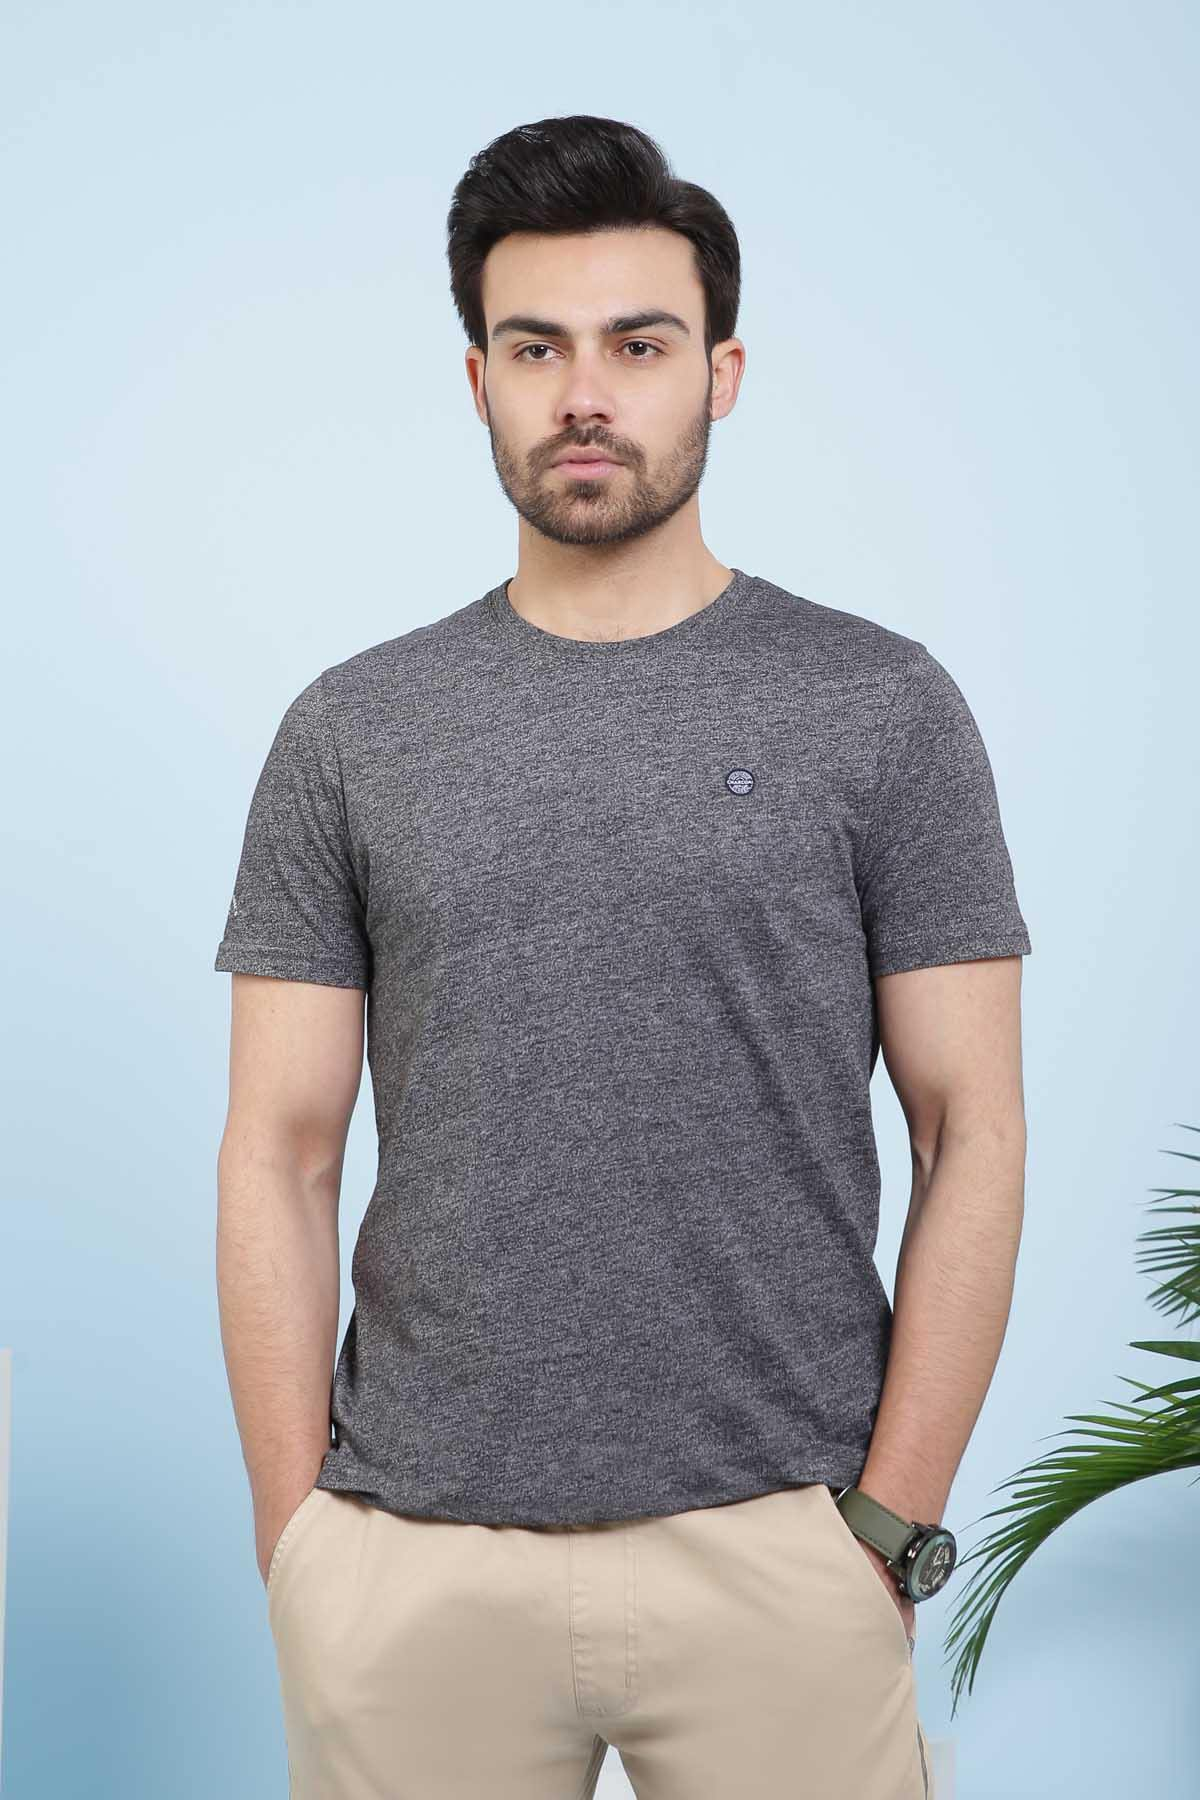 T SHIRT CREW NECK CHARCOAL - Charcoal - POLO & TEES - Shirts